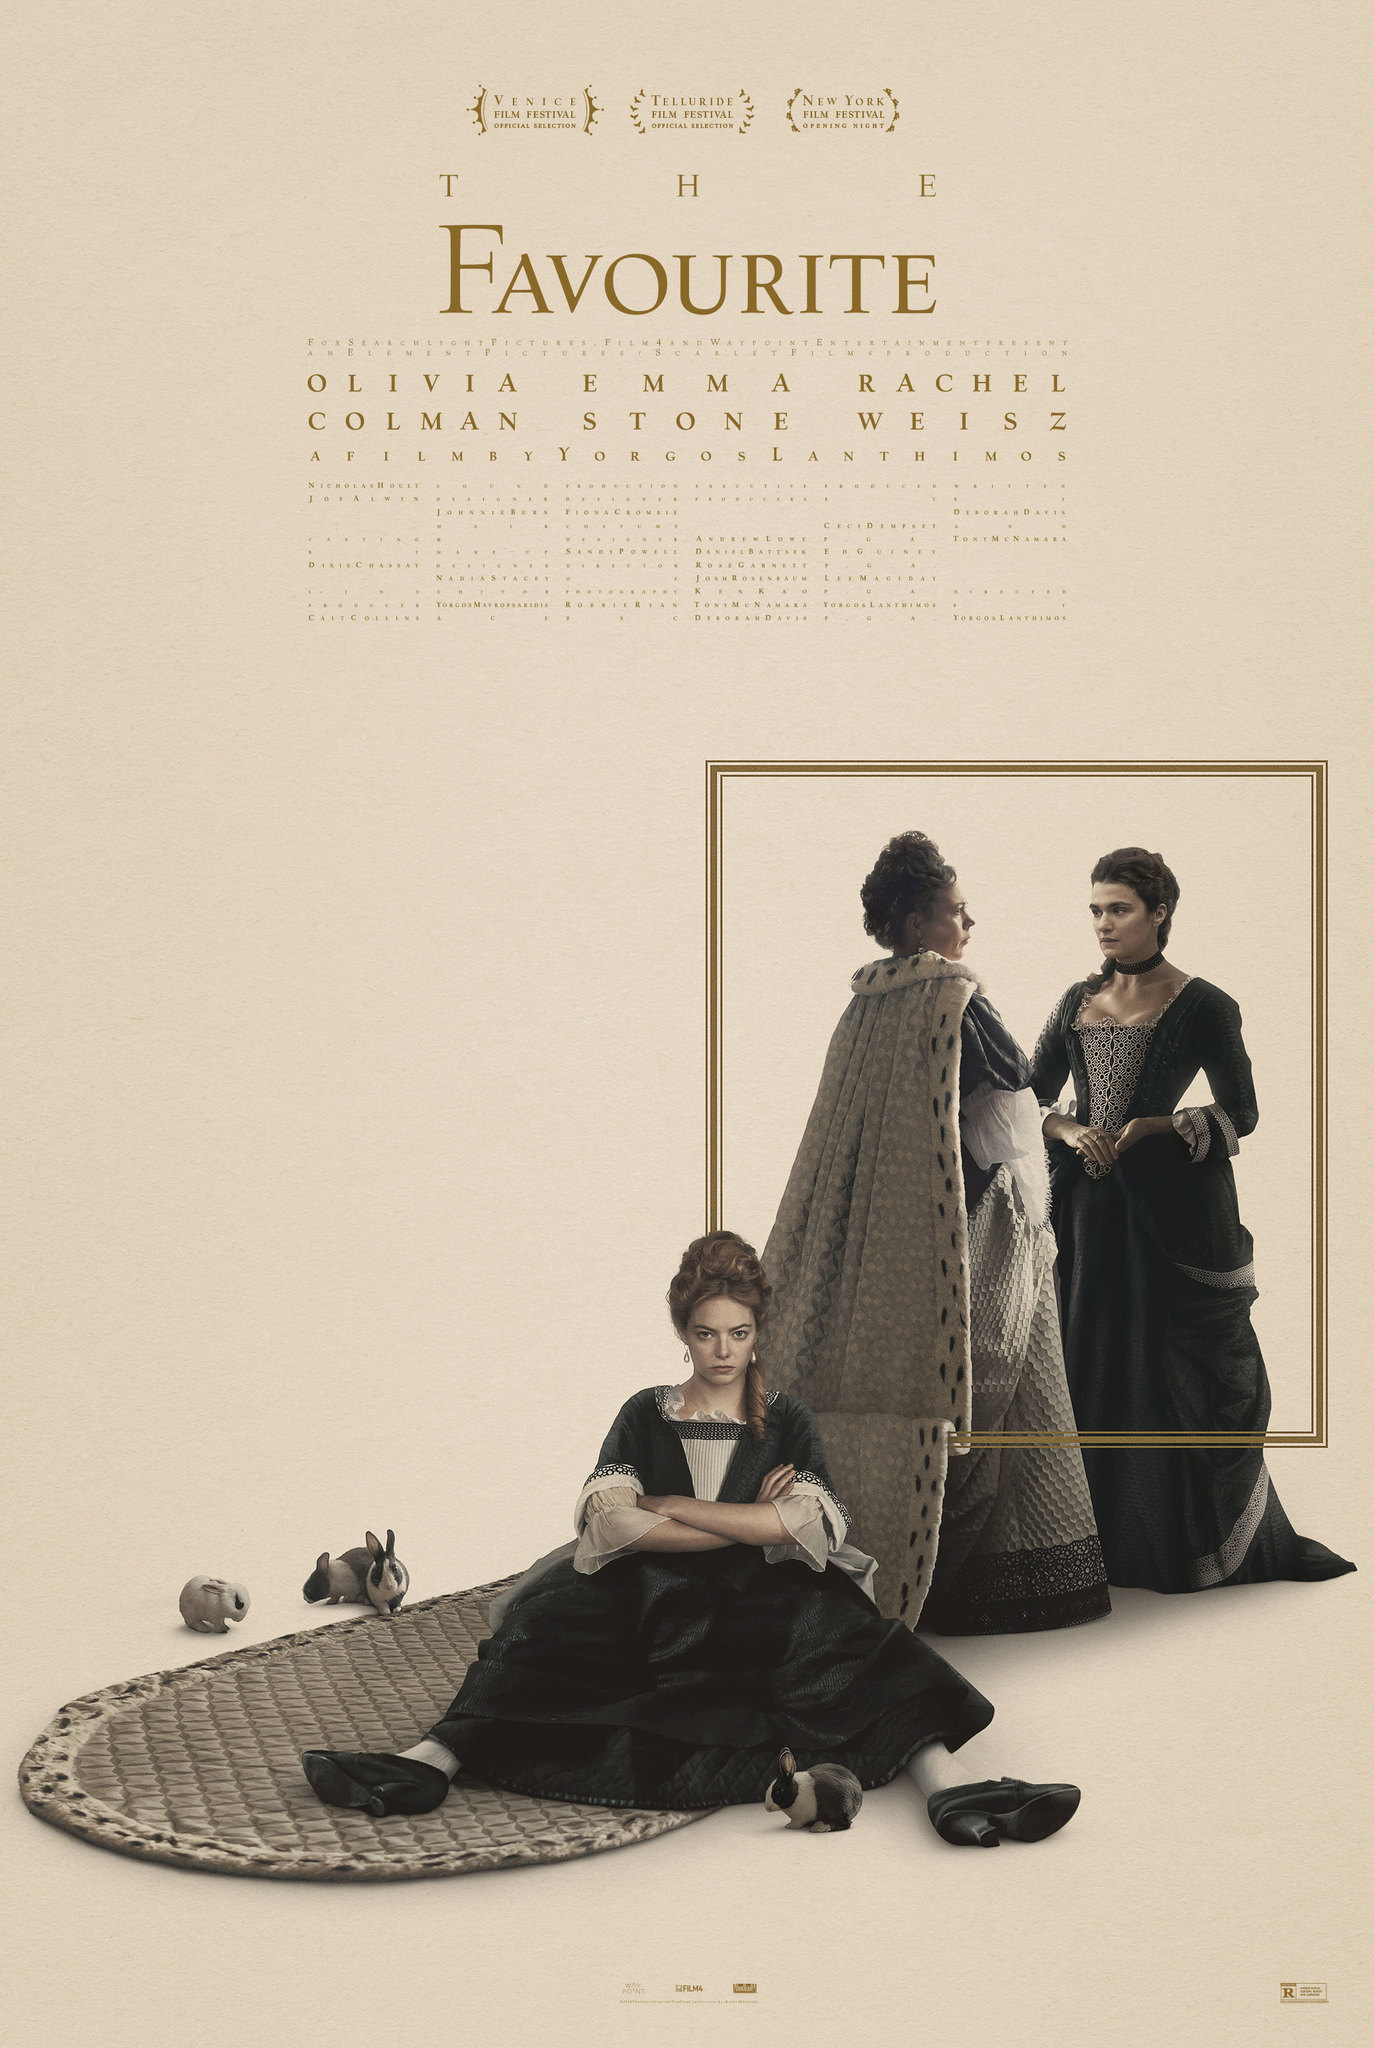 """Favourite - Portland Fashion Week is again working with Fox Searchlight Pictures and we are excited to announce the theatrical release of the upcoming film THE FAVOURITE.Taking place in early 18th century England, where frail Queen Anne (Olivia Coleman) and her close confidant, Lady Sarah (Rachel Weisz) rules the country in the Queen's stead, a new servant (Emma Stone) sees her new friendship with the Queen as a way to fulfill her ambitions. The Los Angeles Times calls THE FAVOURITE, """"Splendidly wicked"""" and """"More pure, devious fun than any other great movie this year!""""Follow us on social media and comment with your favorite fashion inspiration and those that comment will be entered to win advanced tickets and a prize pack.December 5th at 7:30PM at Regal Bridgeport winners receive a prize pack and advanced screening tickets under their names at the door."""